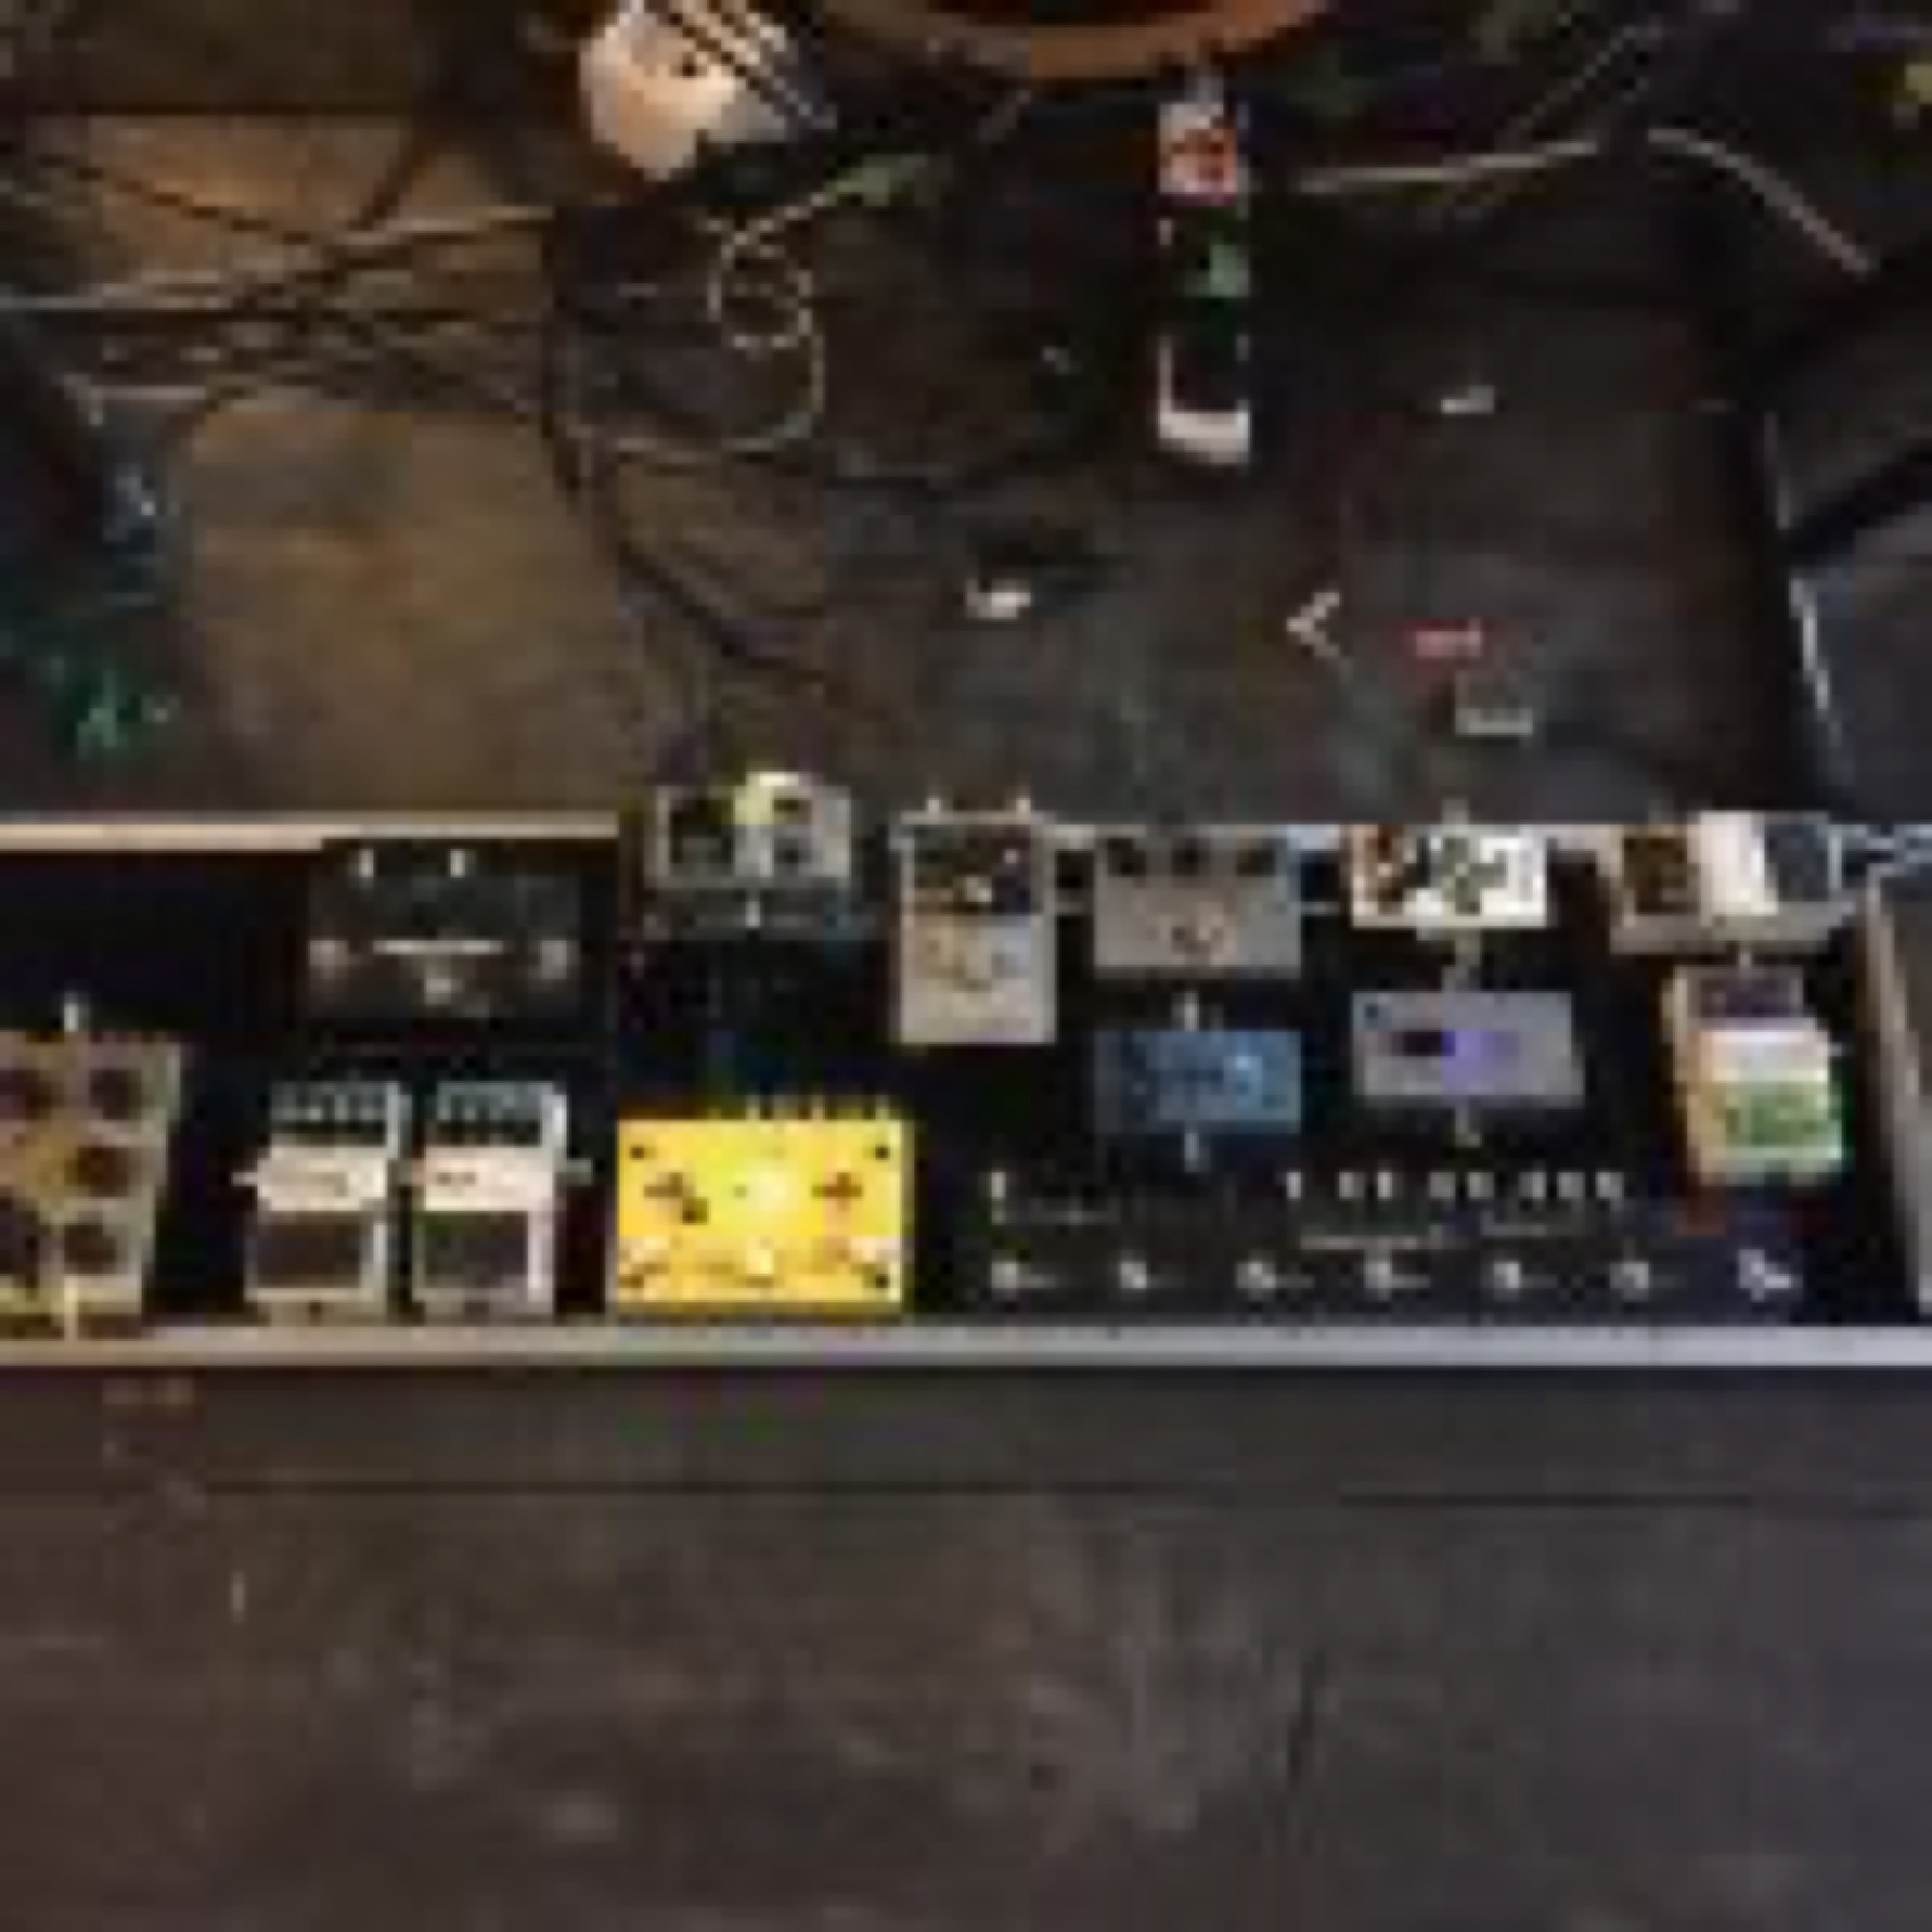 65daysofstatic Custom Pedal Board